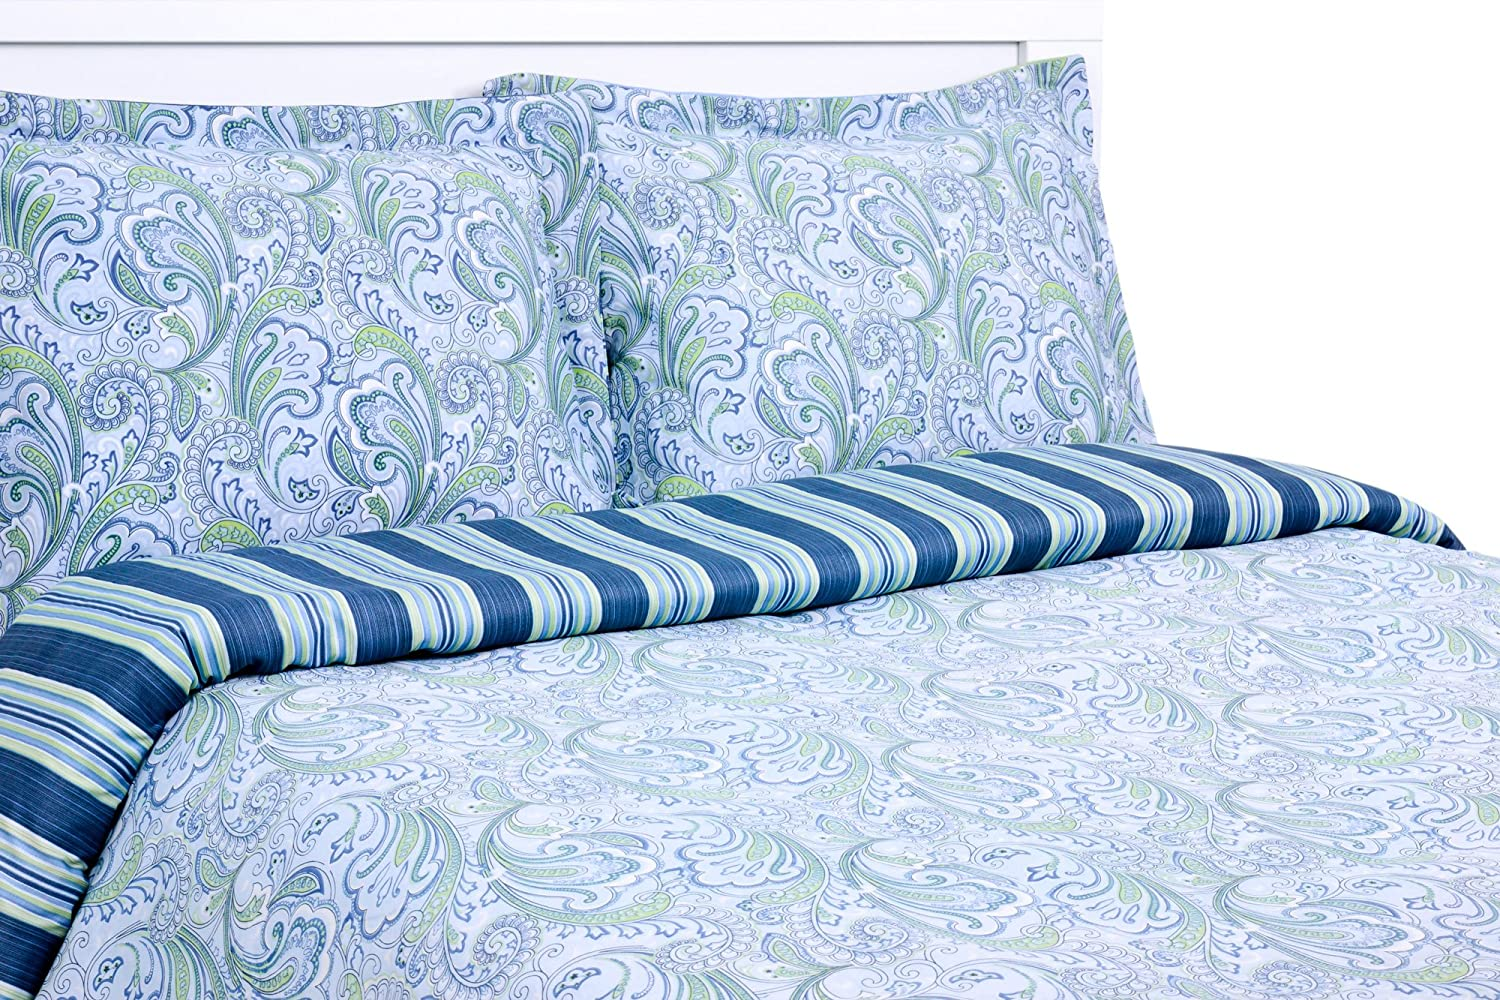 Ranking Fees free!! TOP6 Elite Home 300 Thread Count C 100-Percent Lindsey Paisley Stripe